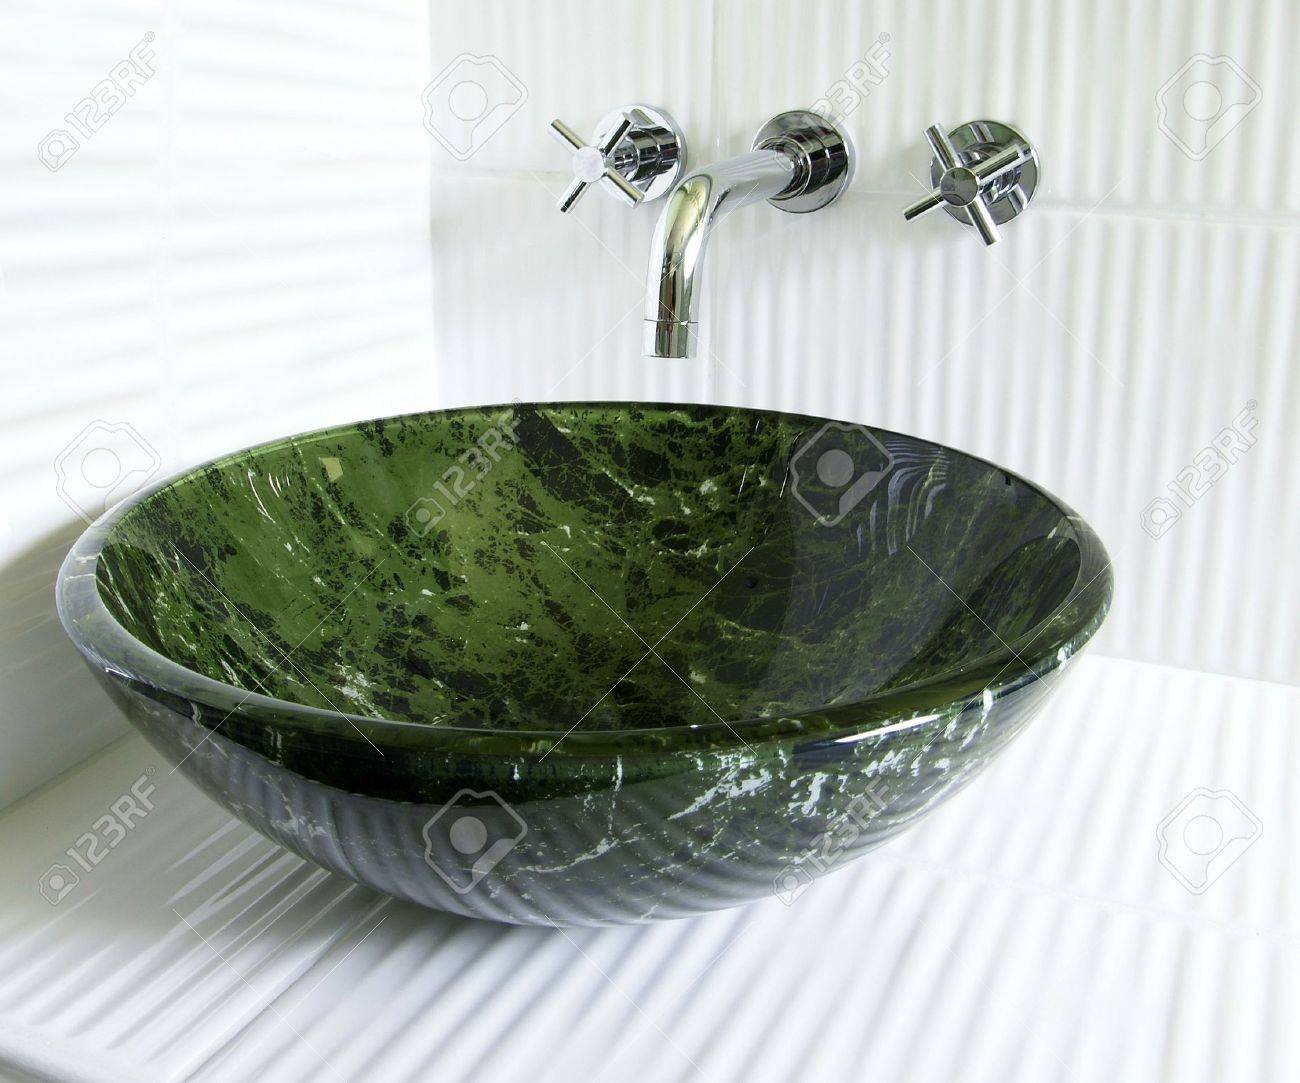 Modern Renovated Bathroom With Tempered Glass Green Marble Imitation Vessel  Sink And Superb Old Style Wall